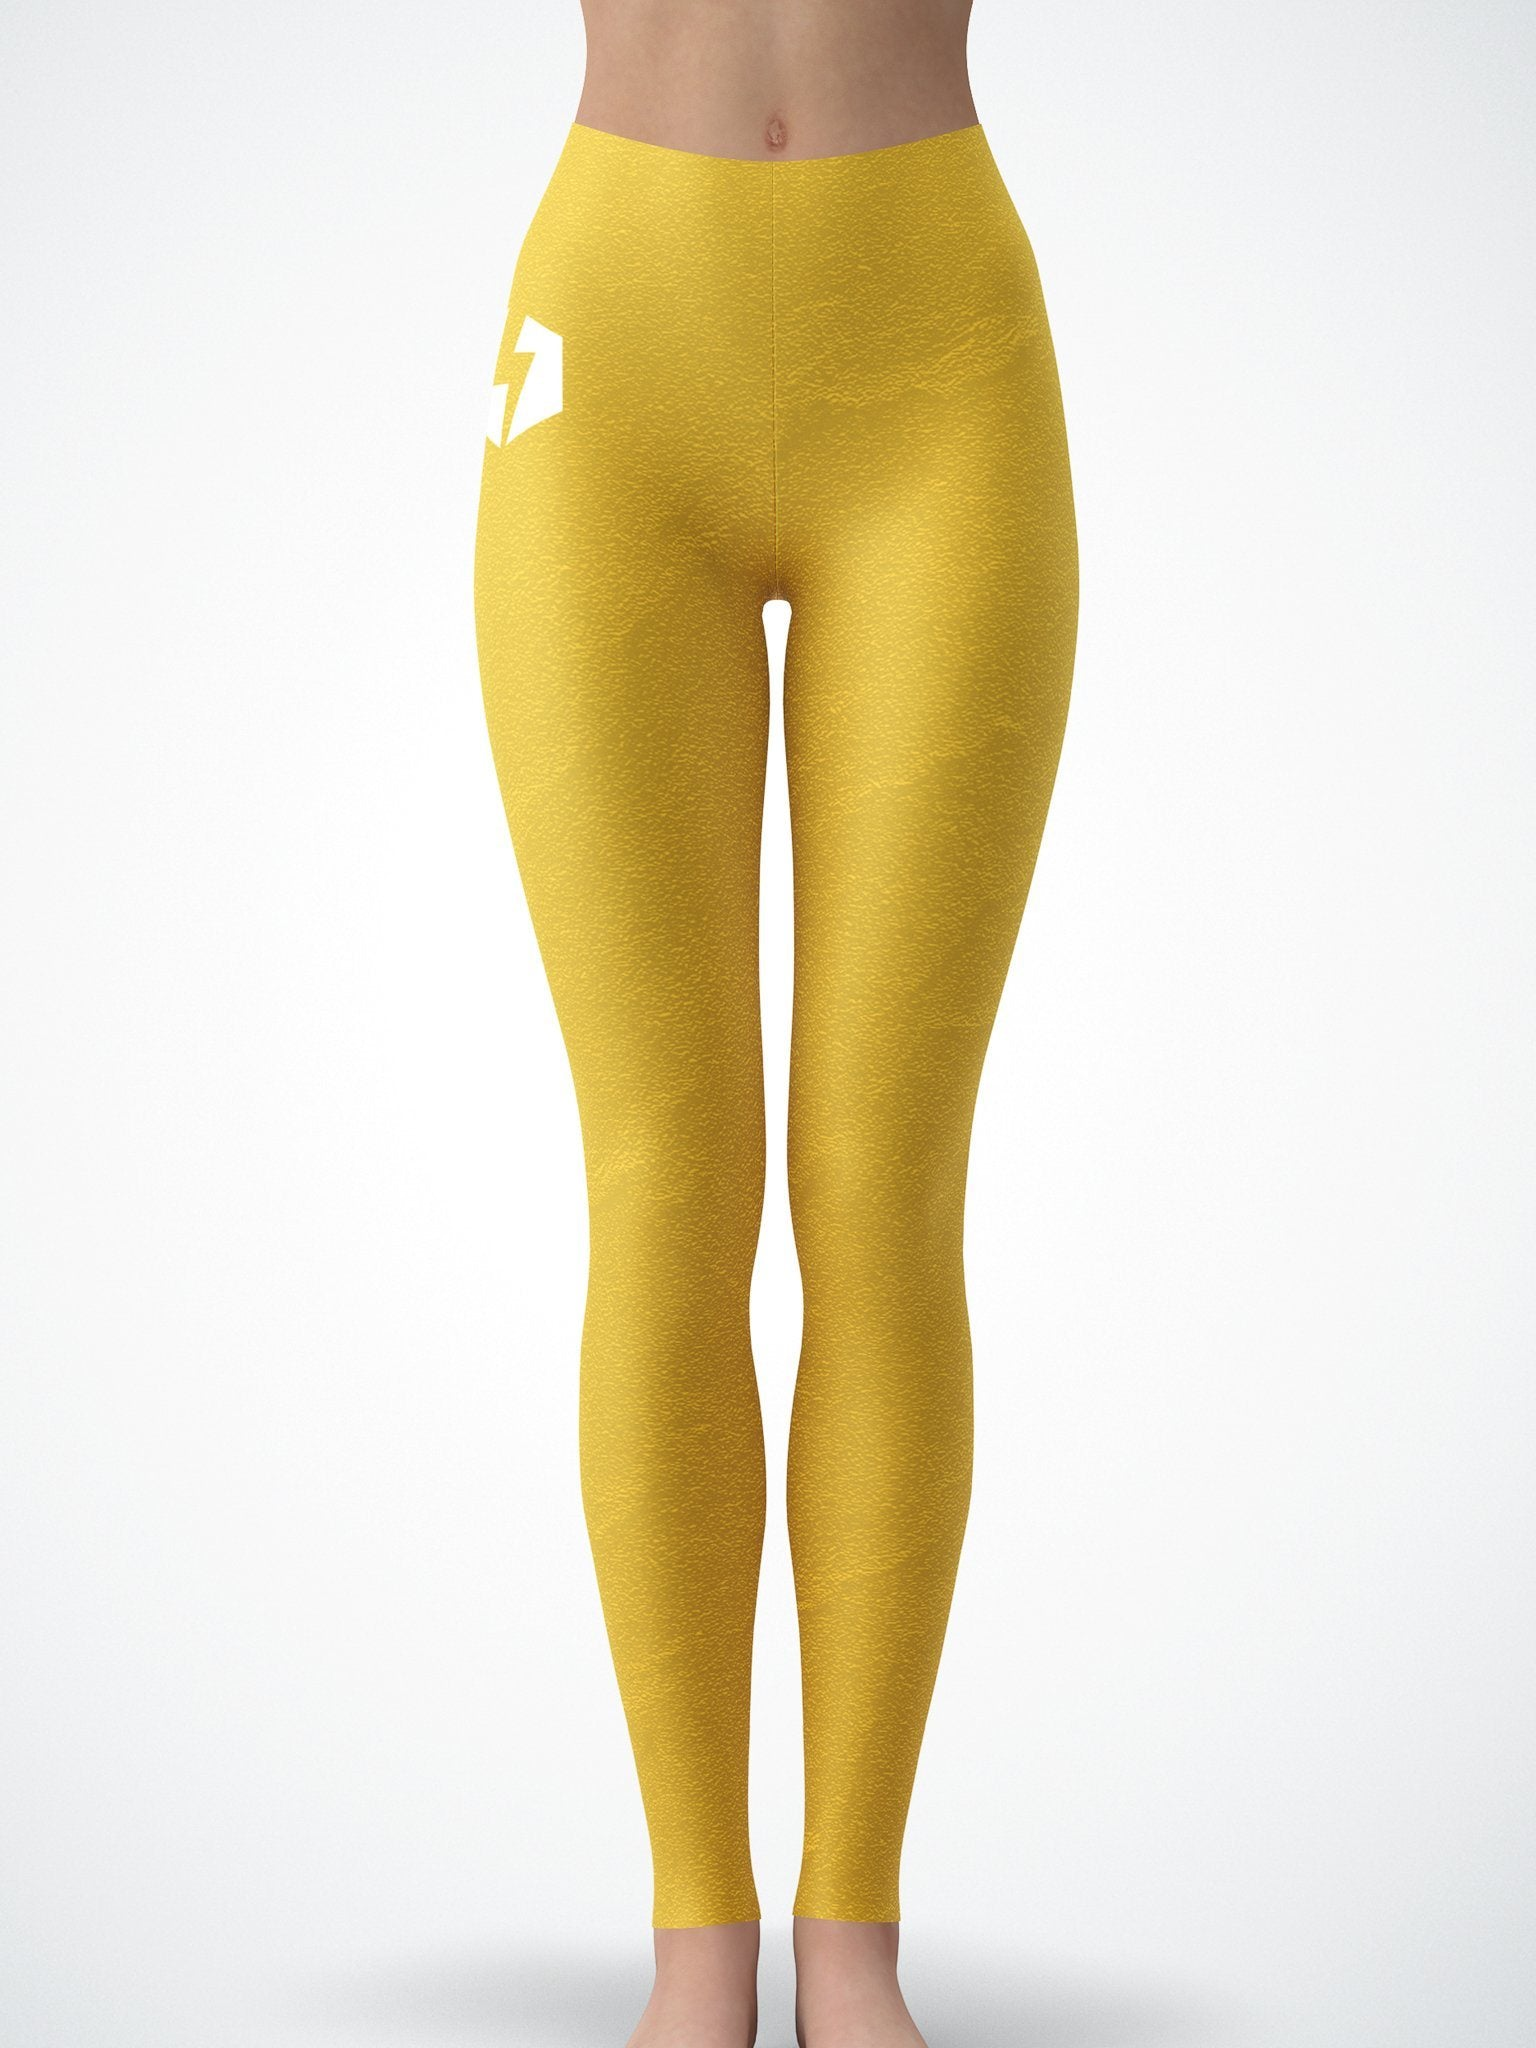 Gold Crushed Velvet Tights Tights Electro Threads